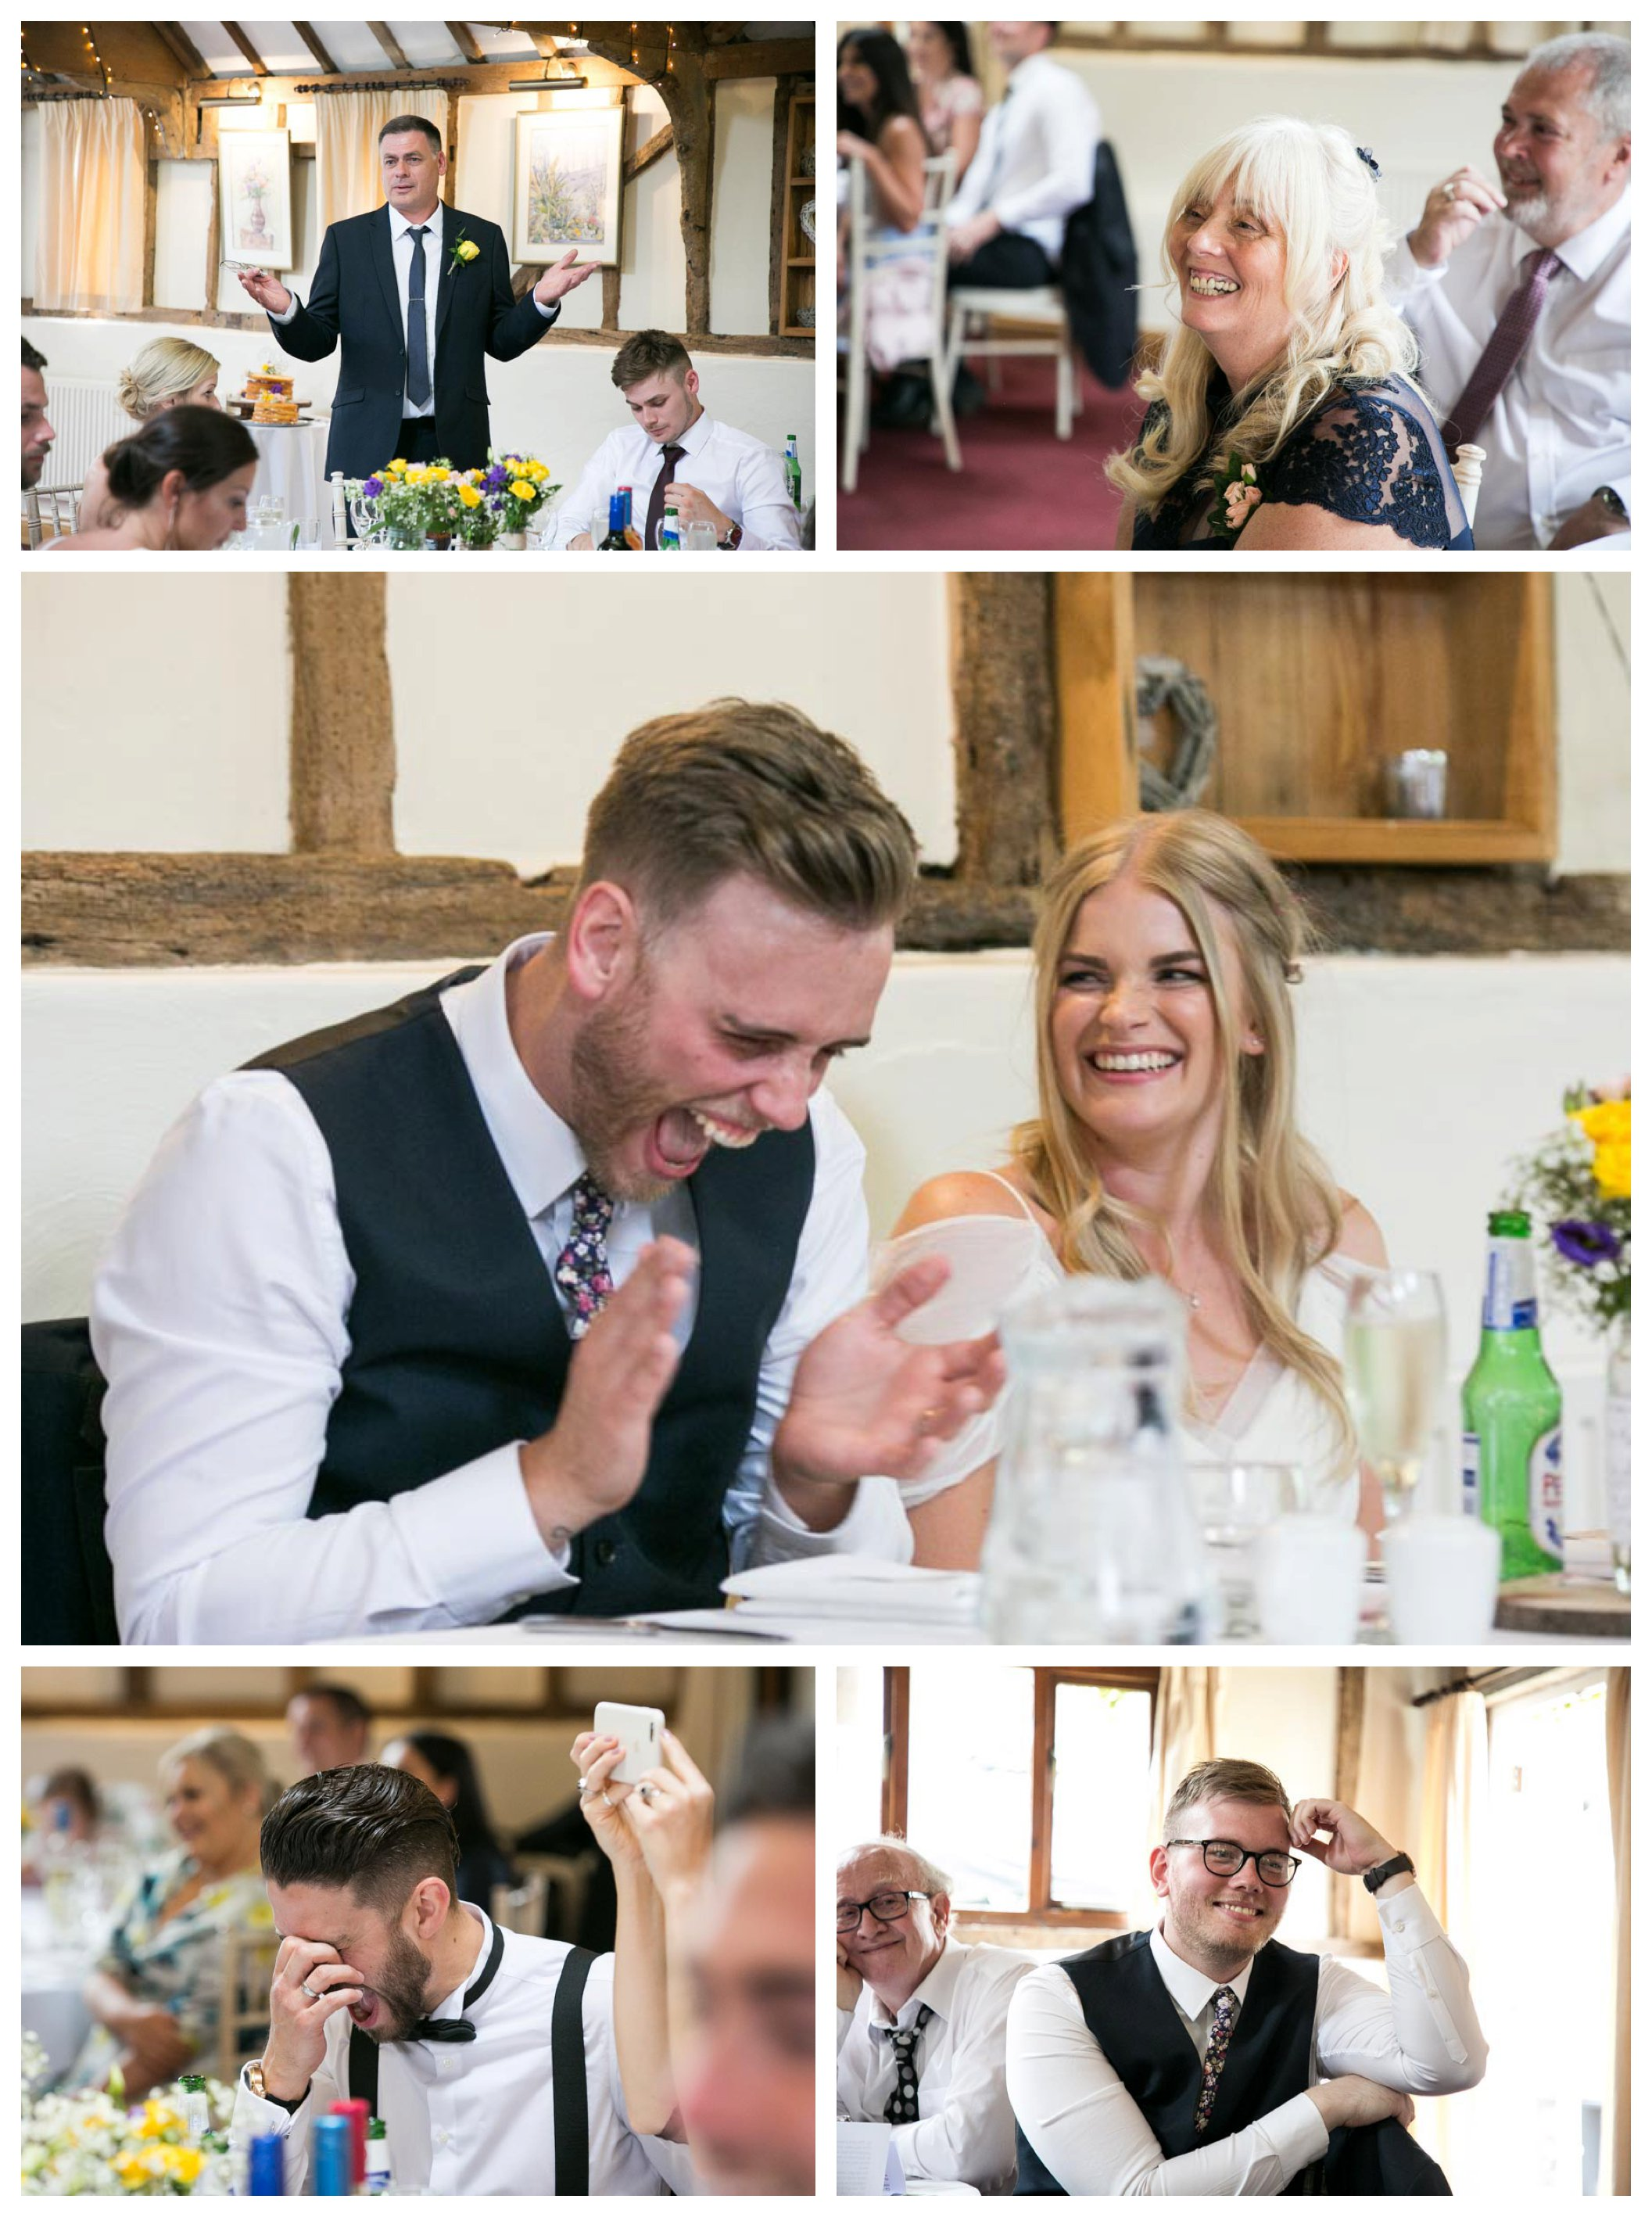 laughing at wedding speeches at Reid Rooms wedding reception